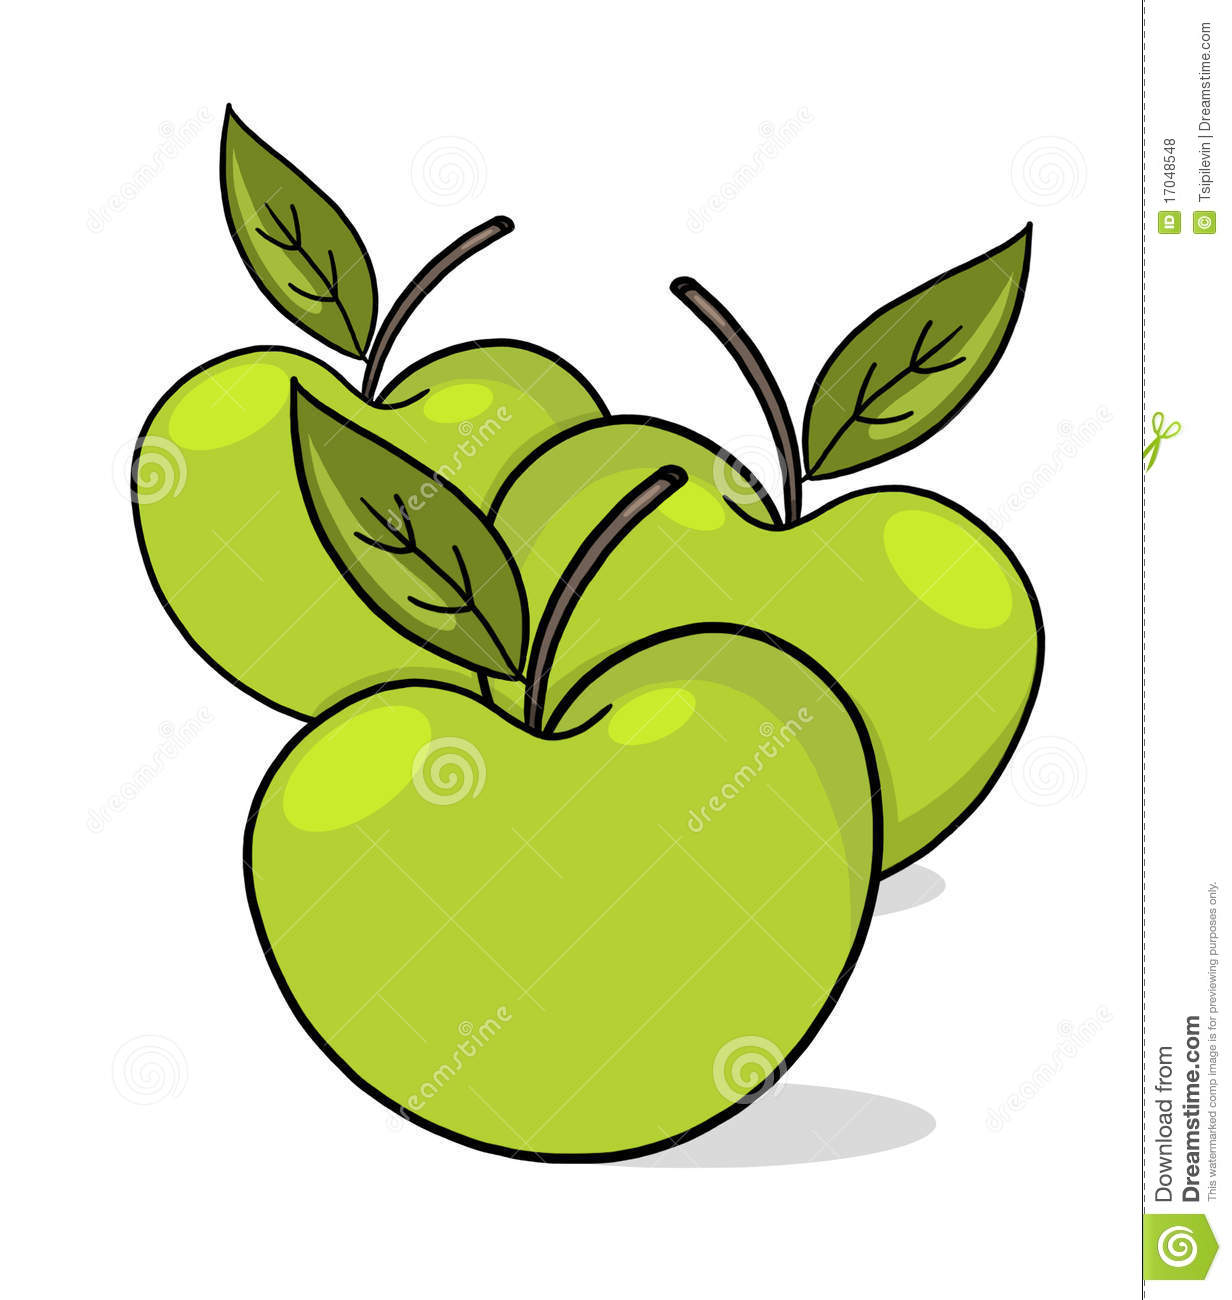 Illustration verte de pommes photos libres de droits - Dessin pomme apple ...